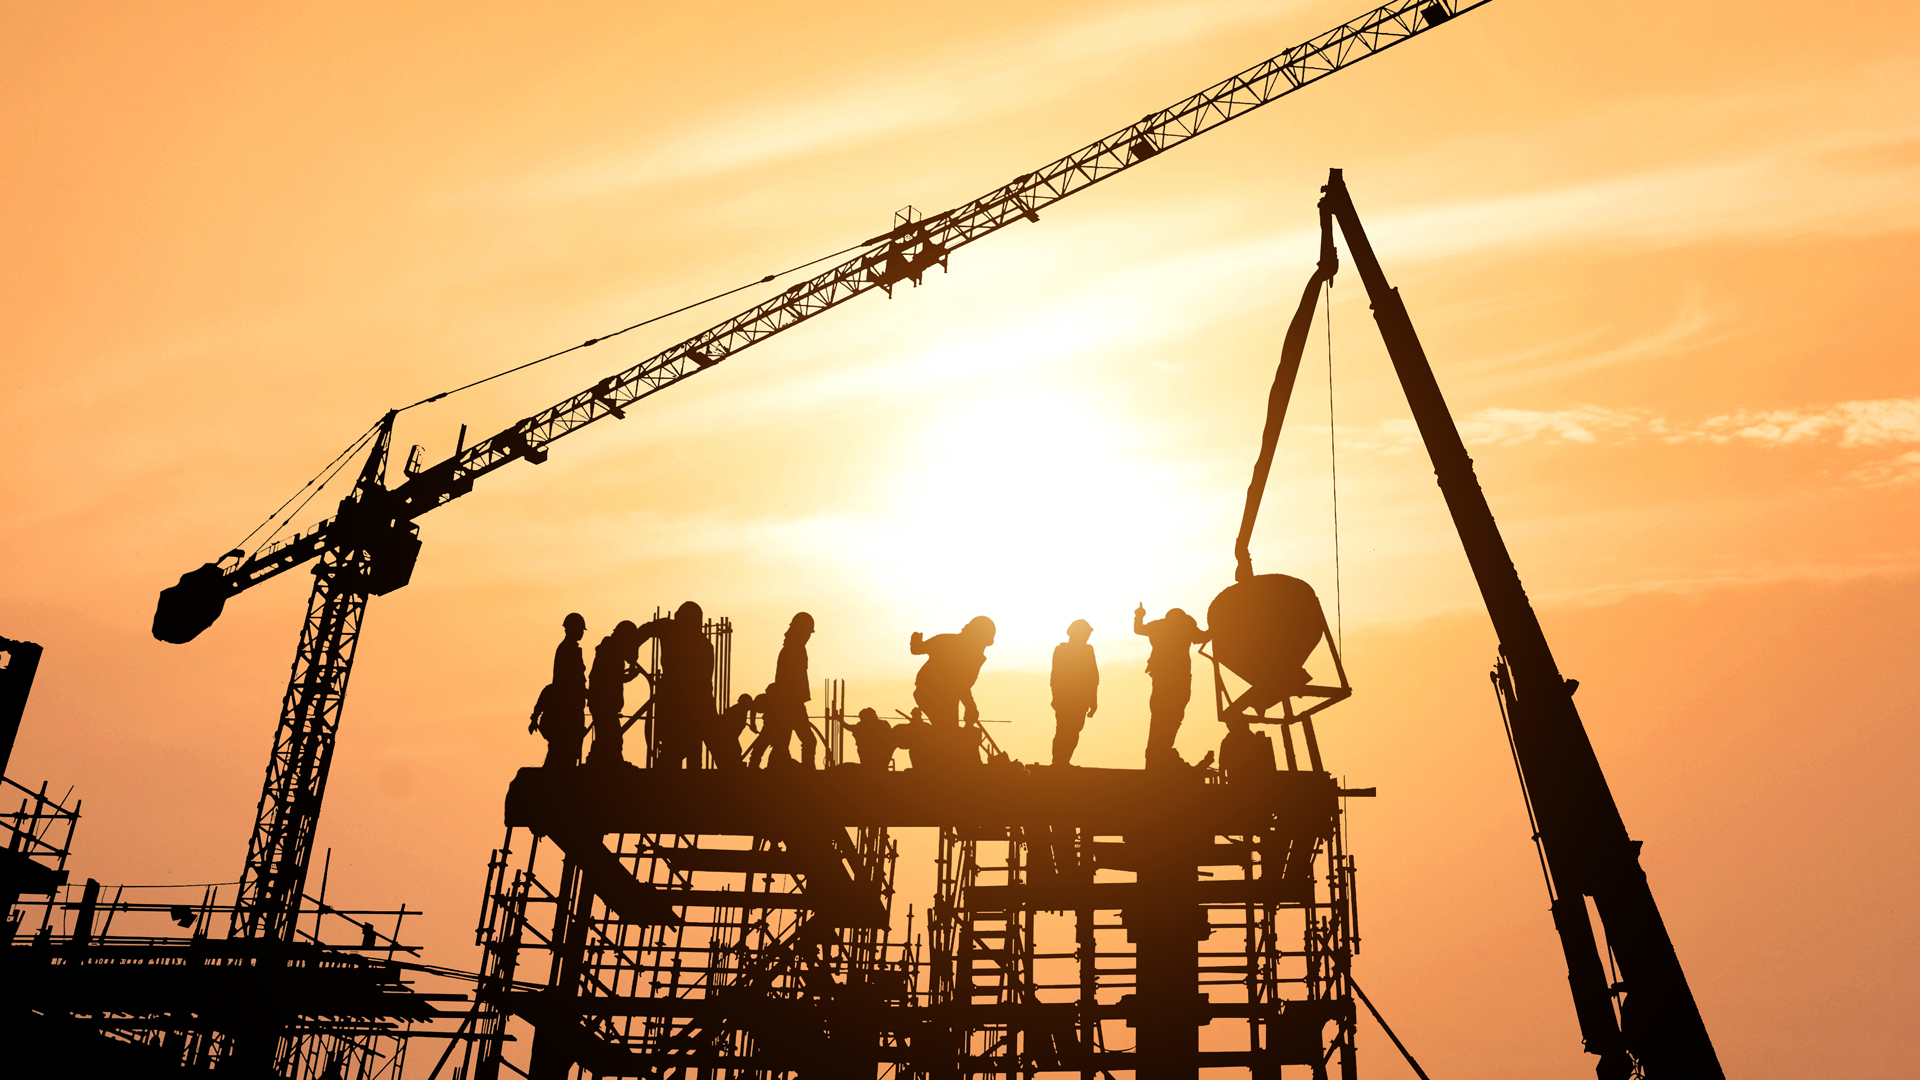 Workers on skyscraper being built with sun setting in background